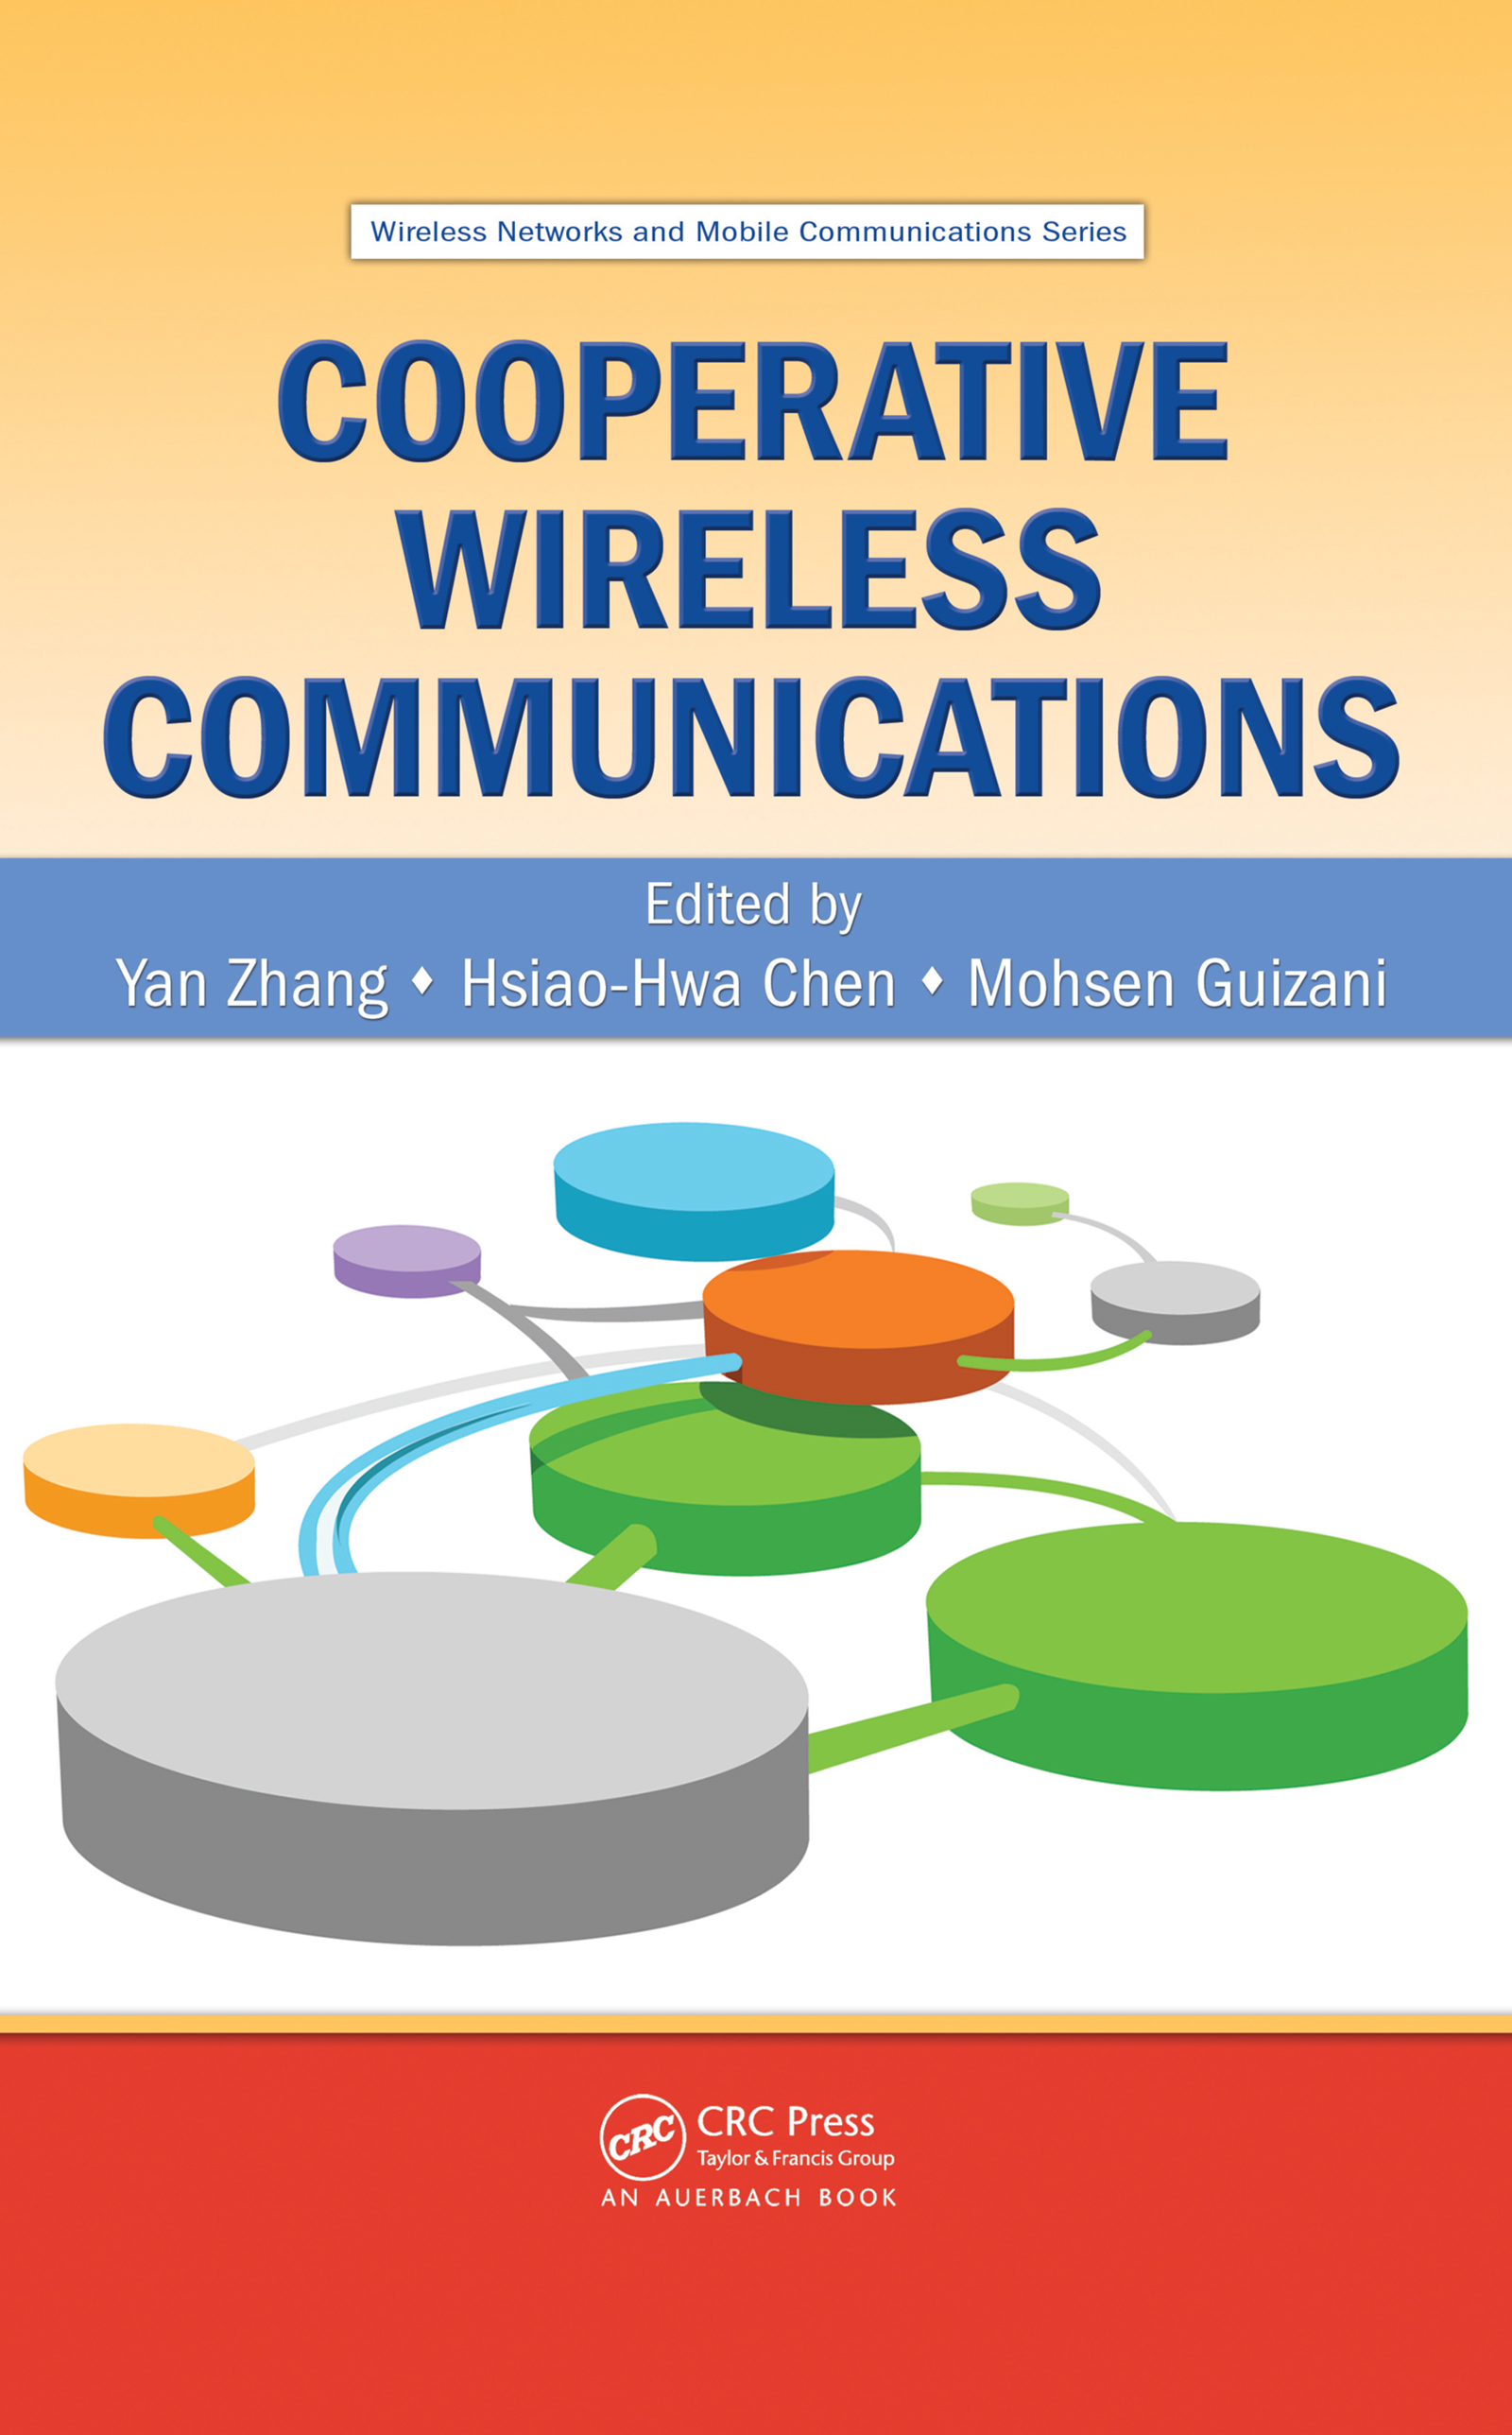 advances in cooperative wireless networking Eurasip journal on wireless communications and networking is a peer-reviewed open access journal published under the brand springeropen the overall aim of the eurasip journal on wireless communications and networking is to bring together science and applications of wireless communications and networking technologies.